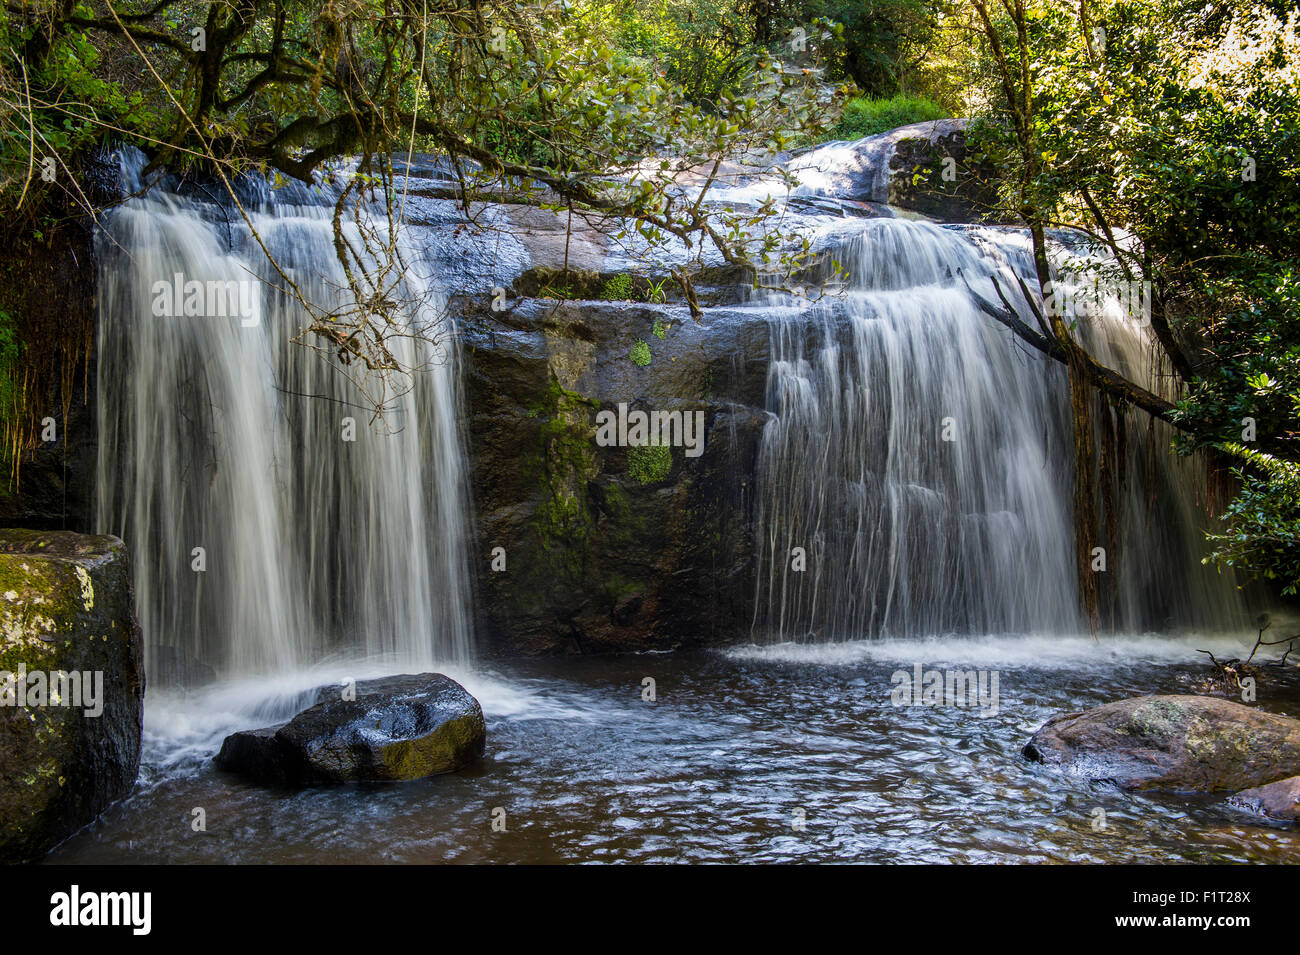 Williams Falls on the Zomba Plateau, Malawi, Africa - Stock Image